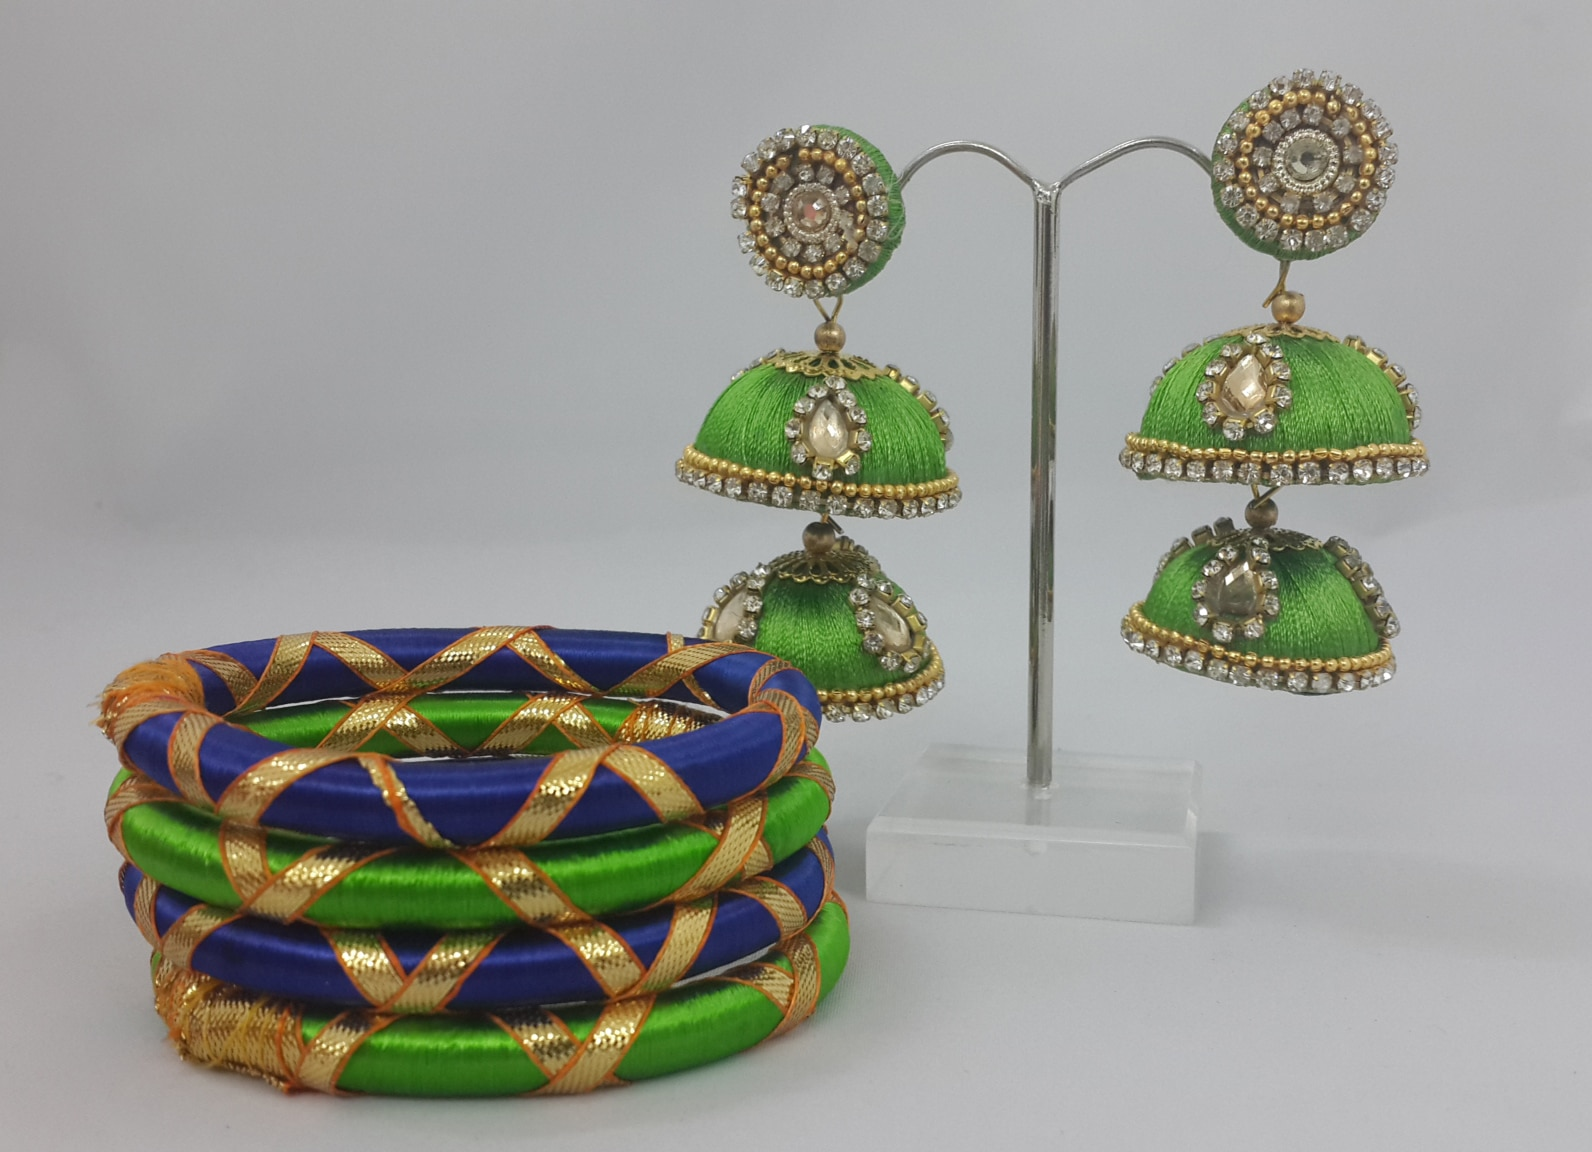 Manufacturers, Wholesalers, Exporters of all Type of Thread Jewellery, Bangles, Necklace, Earrings, Jhumkas etc Festival Jhumkas & Bangles  #Gift/Wedding/Party #US/UK/Malaysia/Australia/Singapore/Mauritius  For Inquiries call/Whatsapp us on +91 9672521511